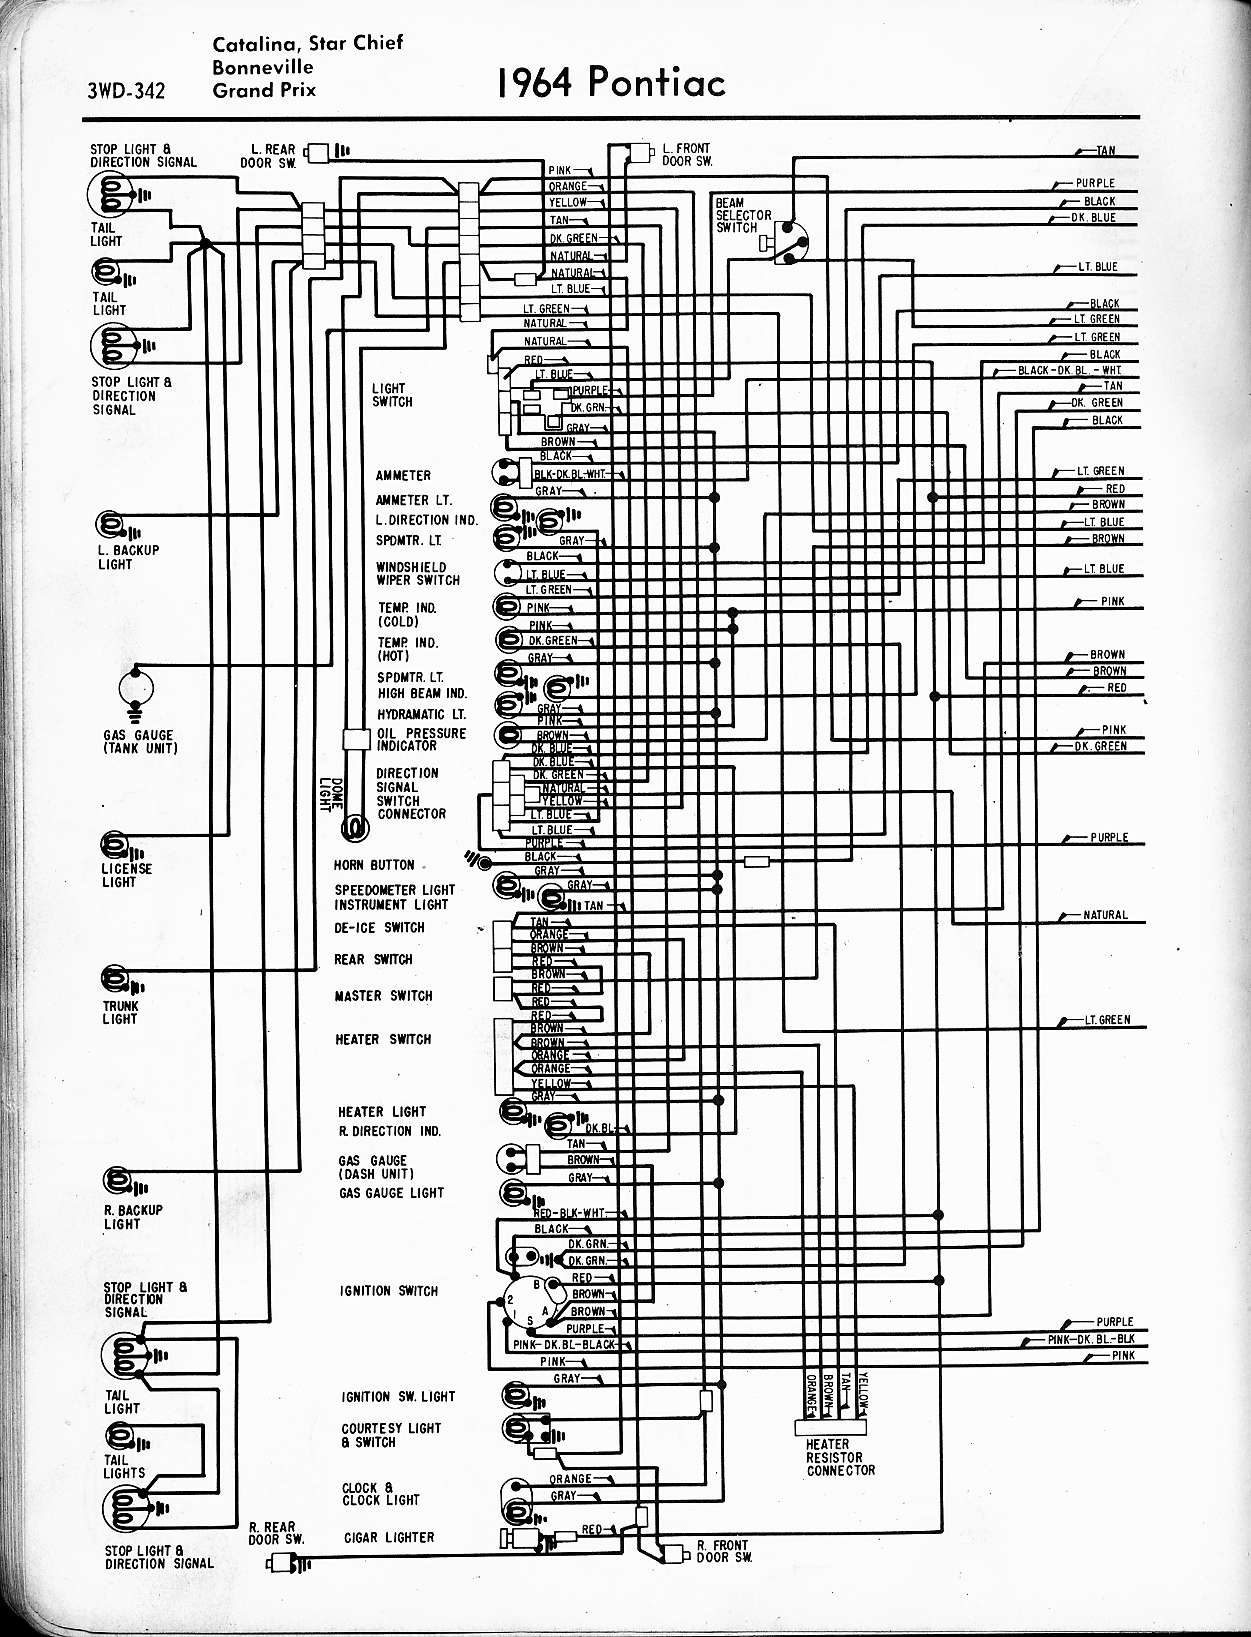 Headlight Switch Wiring Diagram 73 Charger Library 2006 Grand Prix Fuse Box 1970 Pontiac Just Data